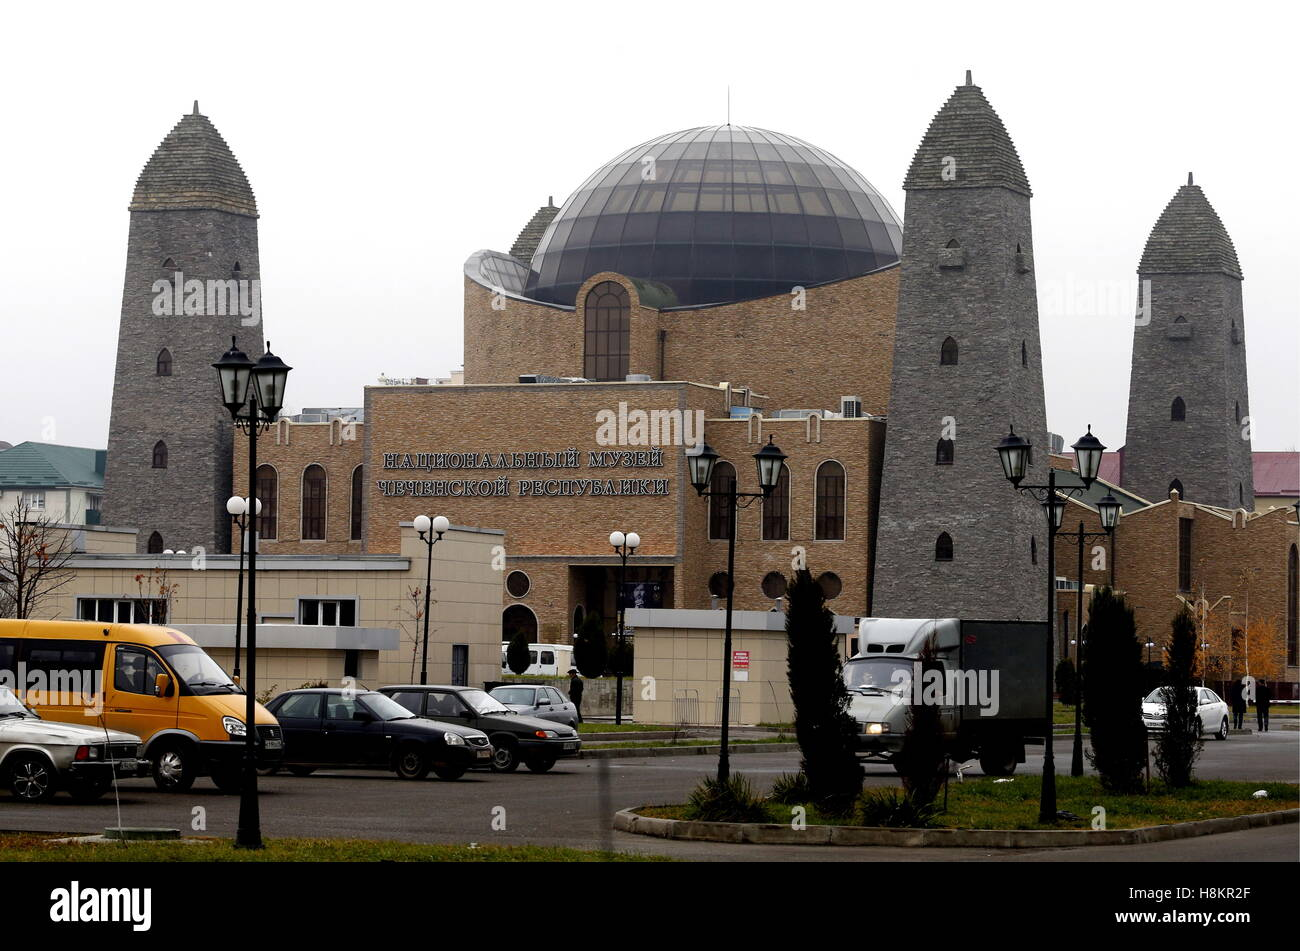 Grozny, Russia. 13th Nov, 2016. A view of the Chechen Republic National Museum. © Valery Matytsin/TASS/Alamy - Stock Image